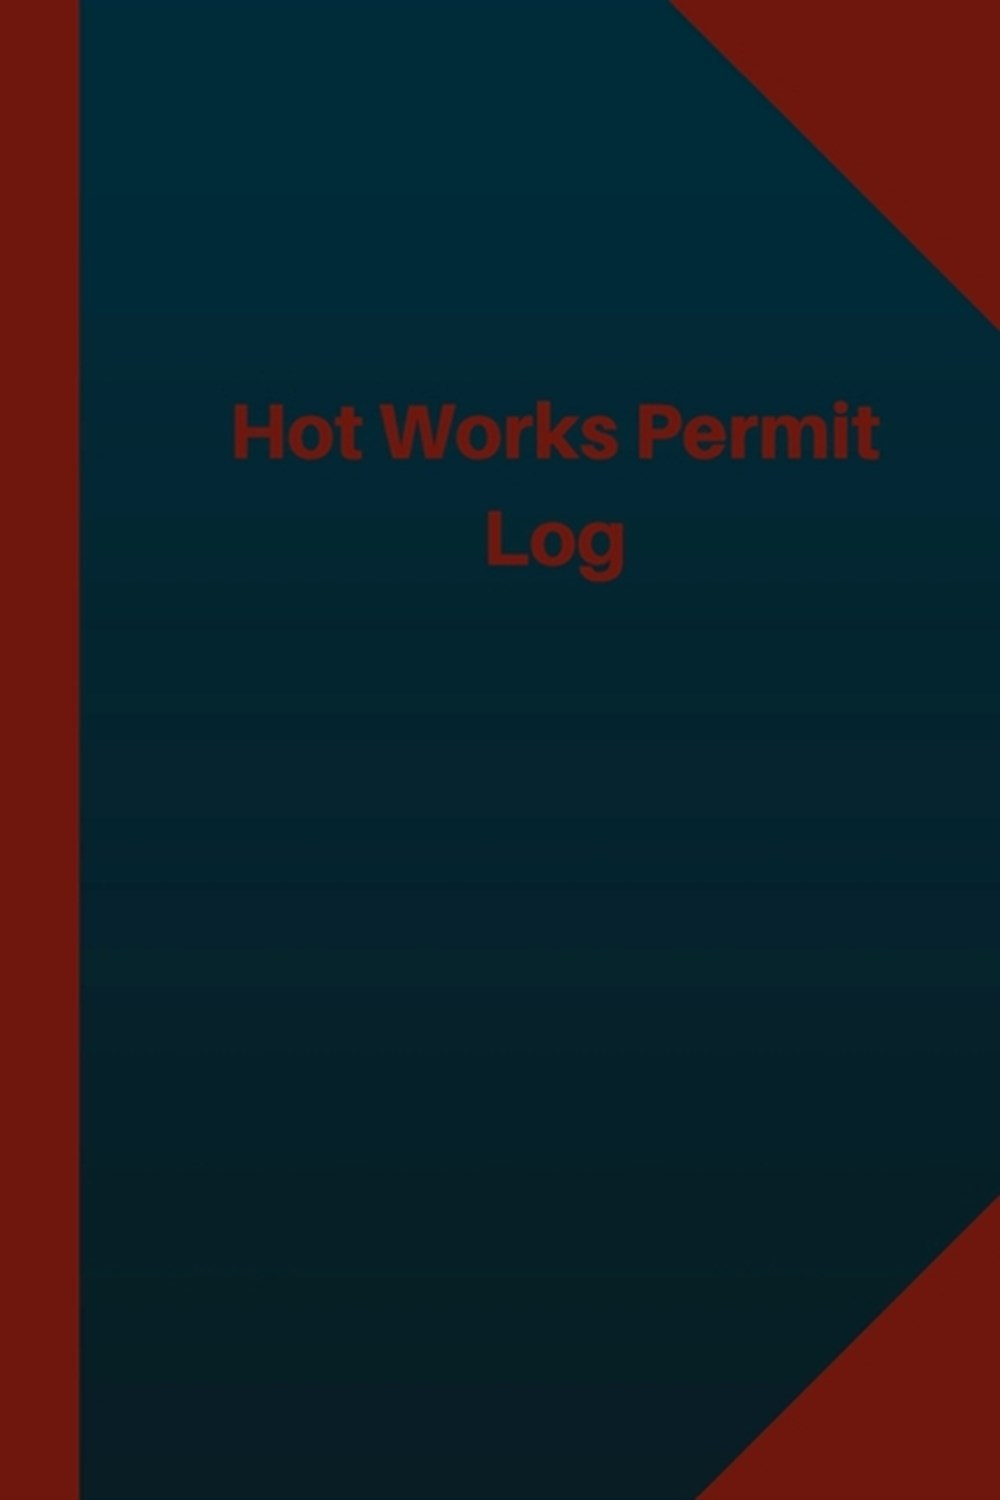 Hot Works Permit Log (Logbook, Journal - 124 pages 6x9 inches) Hot Works Permit Logbook (Blue Cover,